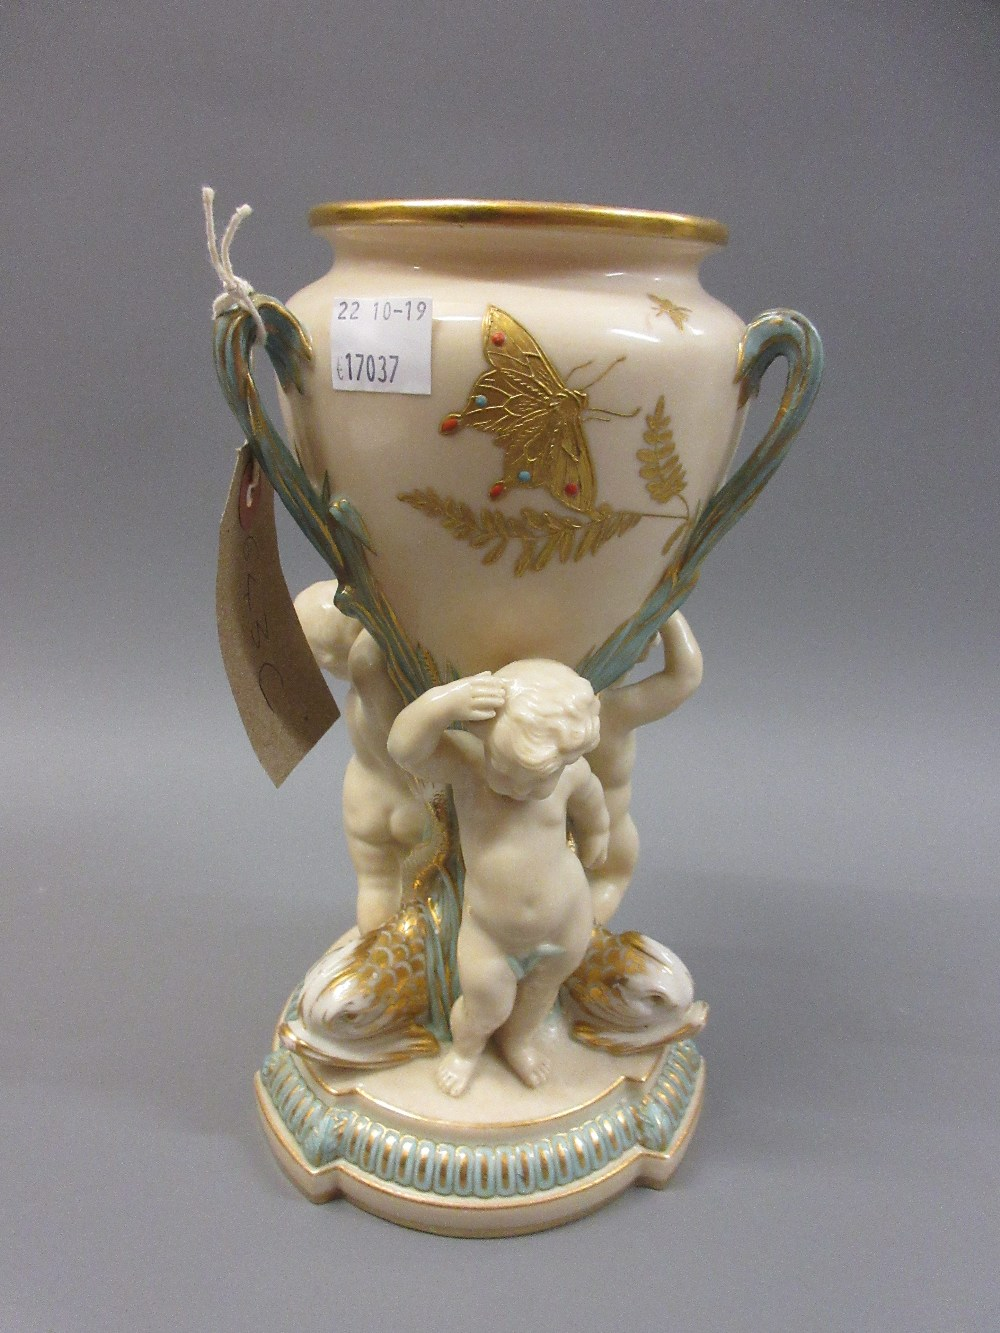 Lot 643C - 19th Century Copeland vase supported by three puti, 9ins high Chip to foot and restoration to two of